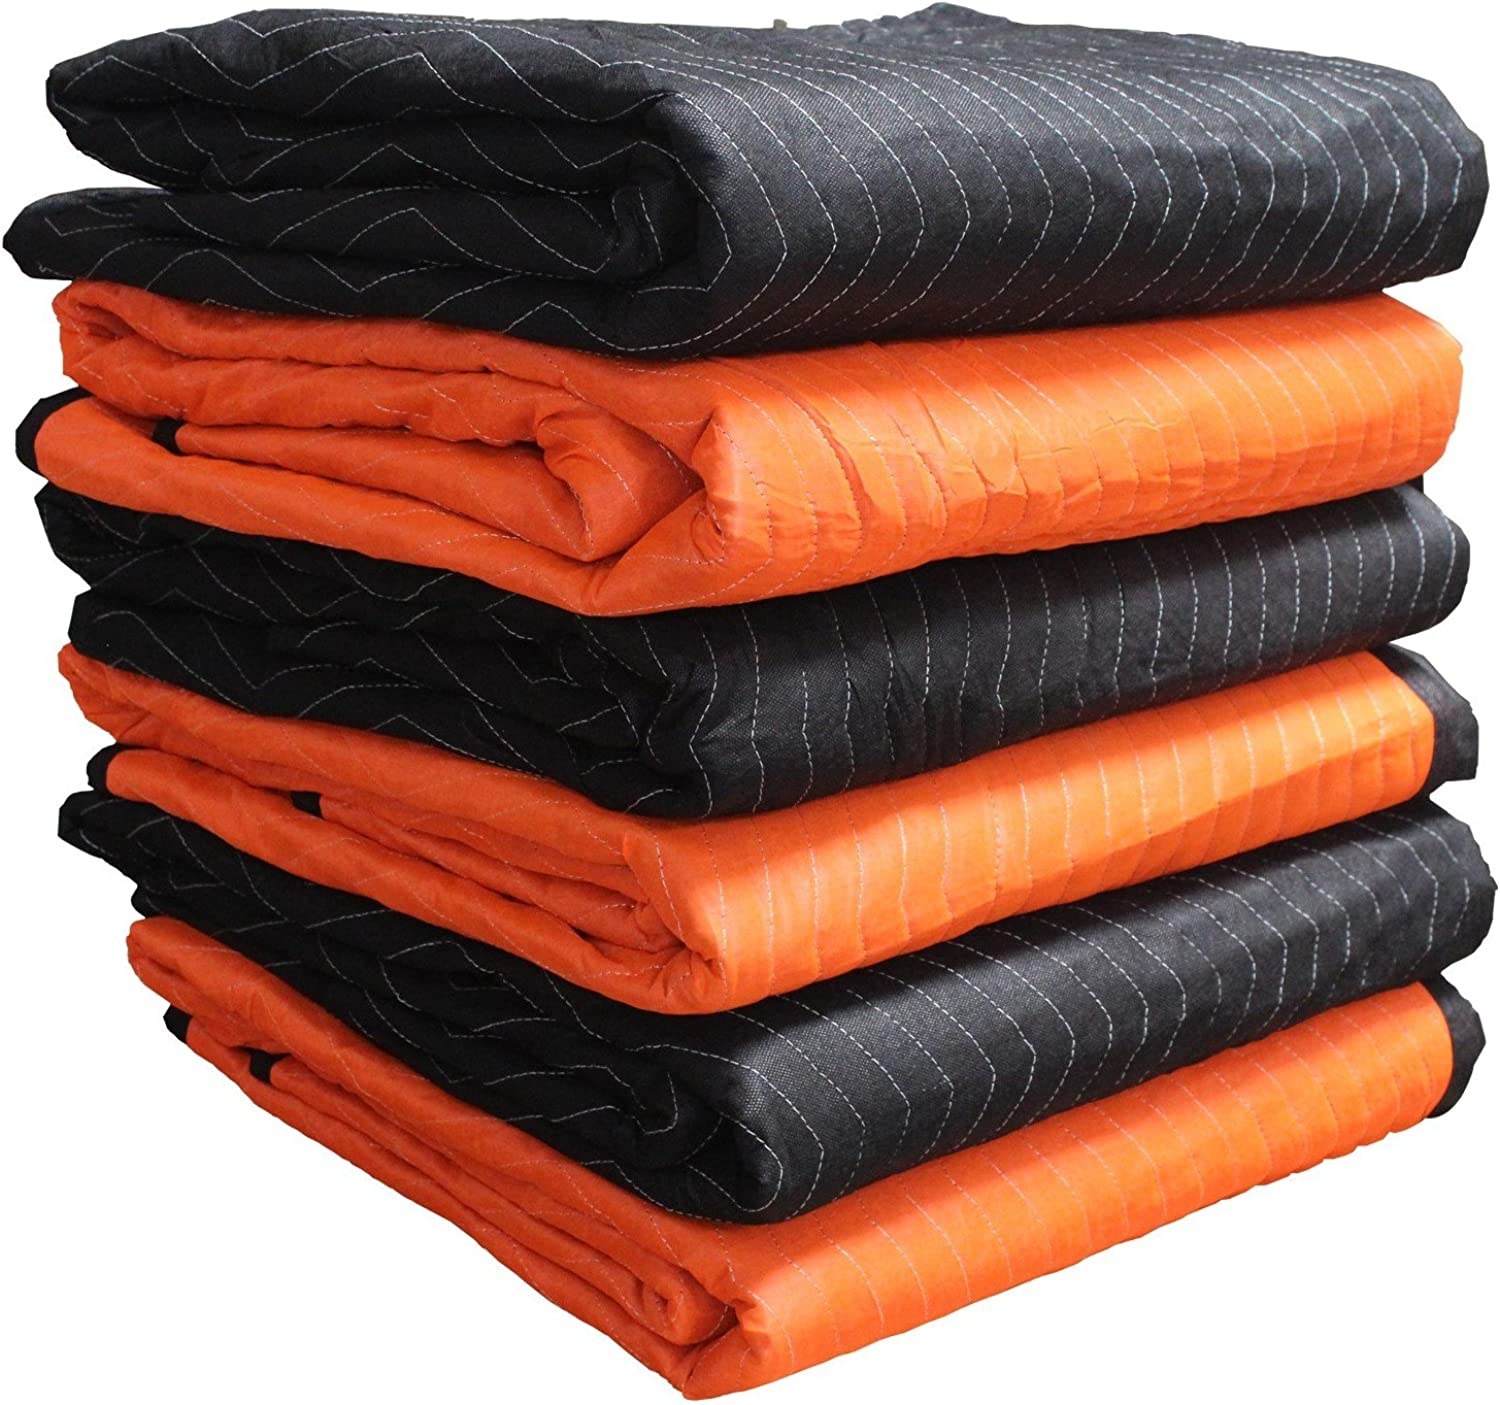 Forearm Forklift FFBMB6 72 Inch x 80 Inch Heavy Weight 6.7 Lbs Moving Blanket, 6-Pack, Model 72 x 80